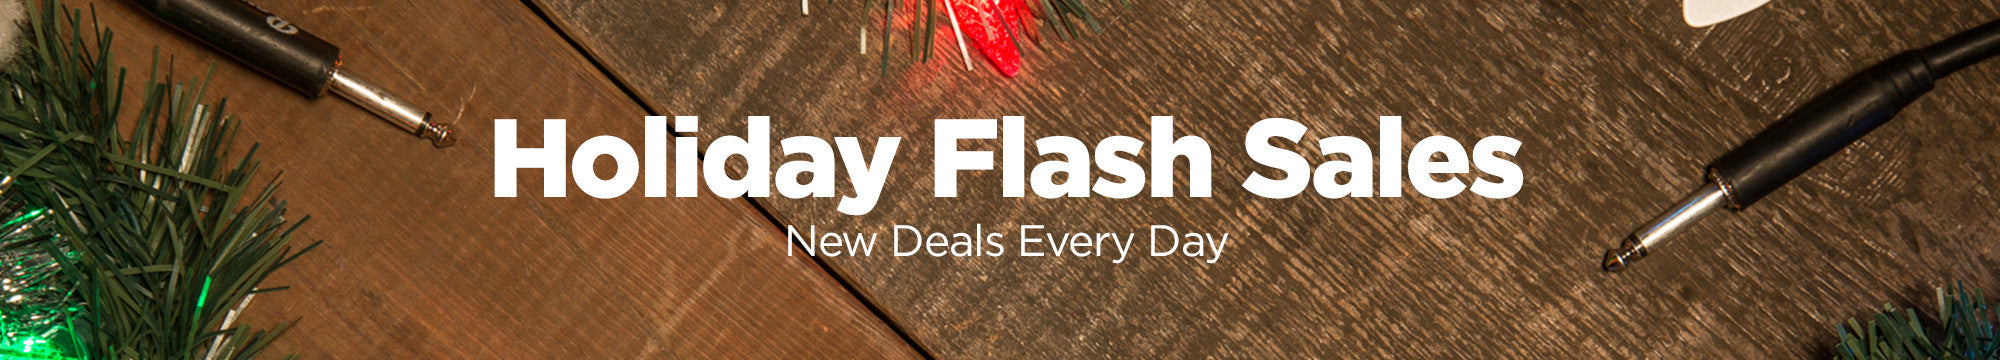 Vintage and Used Fender Flash Sale